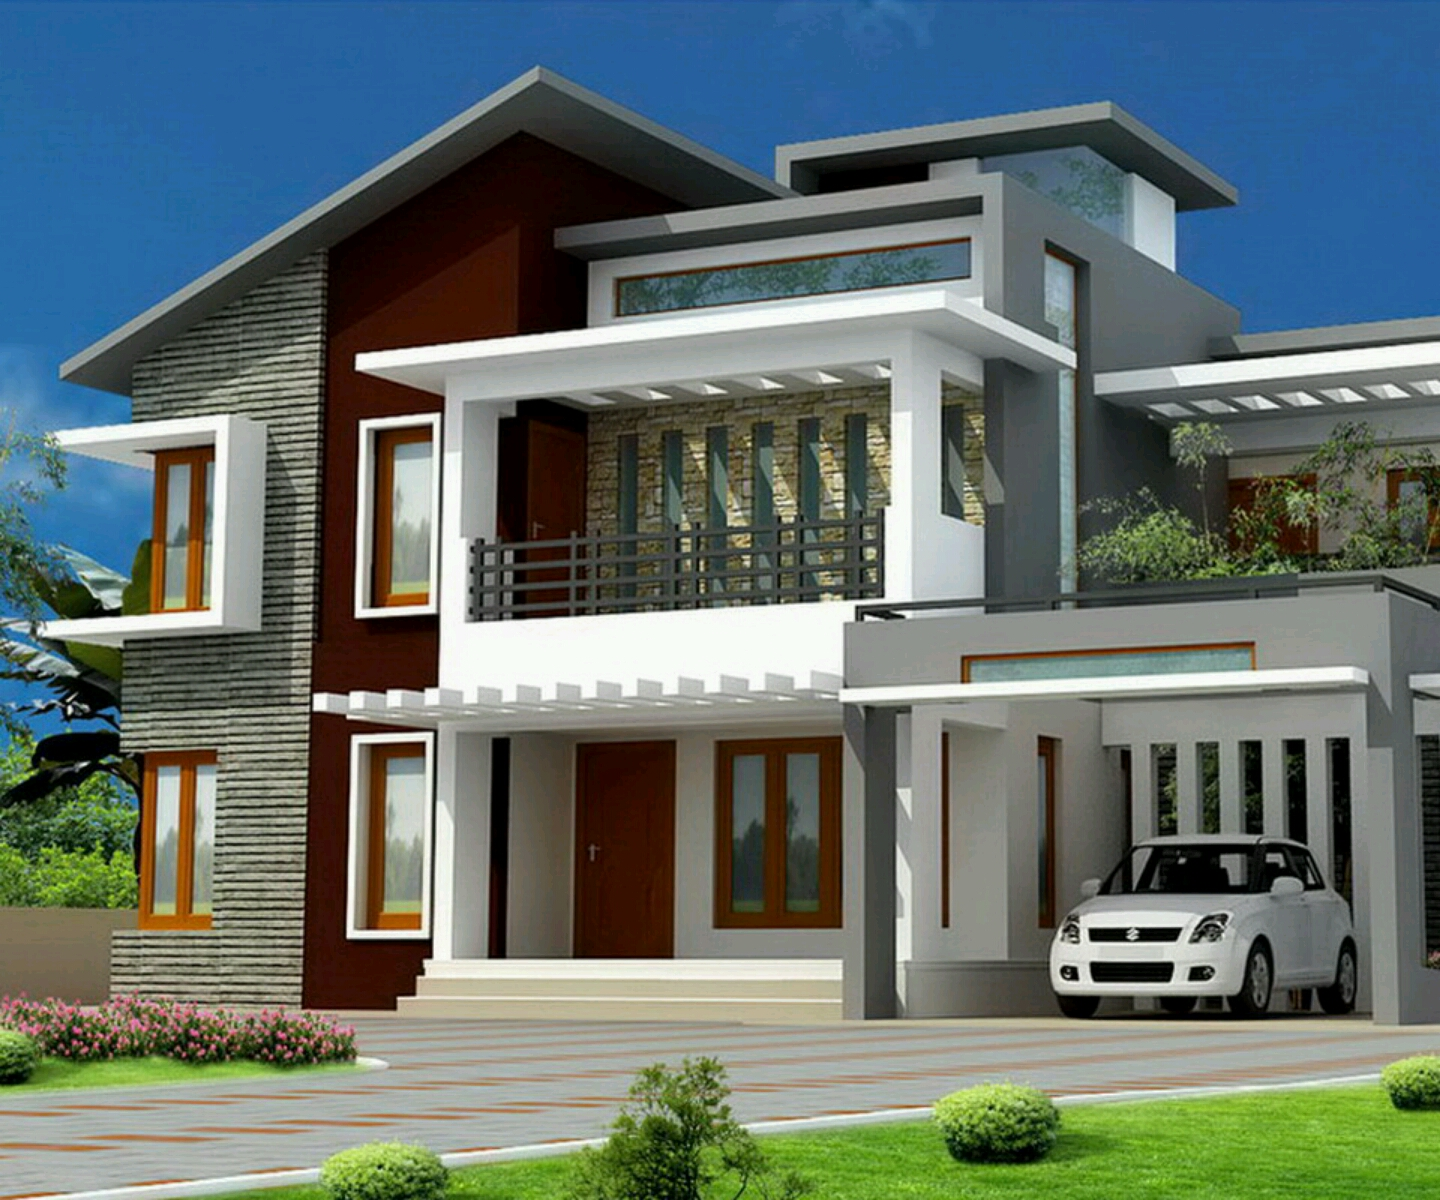 Modern bungalows exterior designs Inspiration - Interior Design